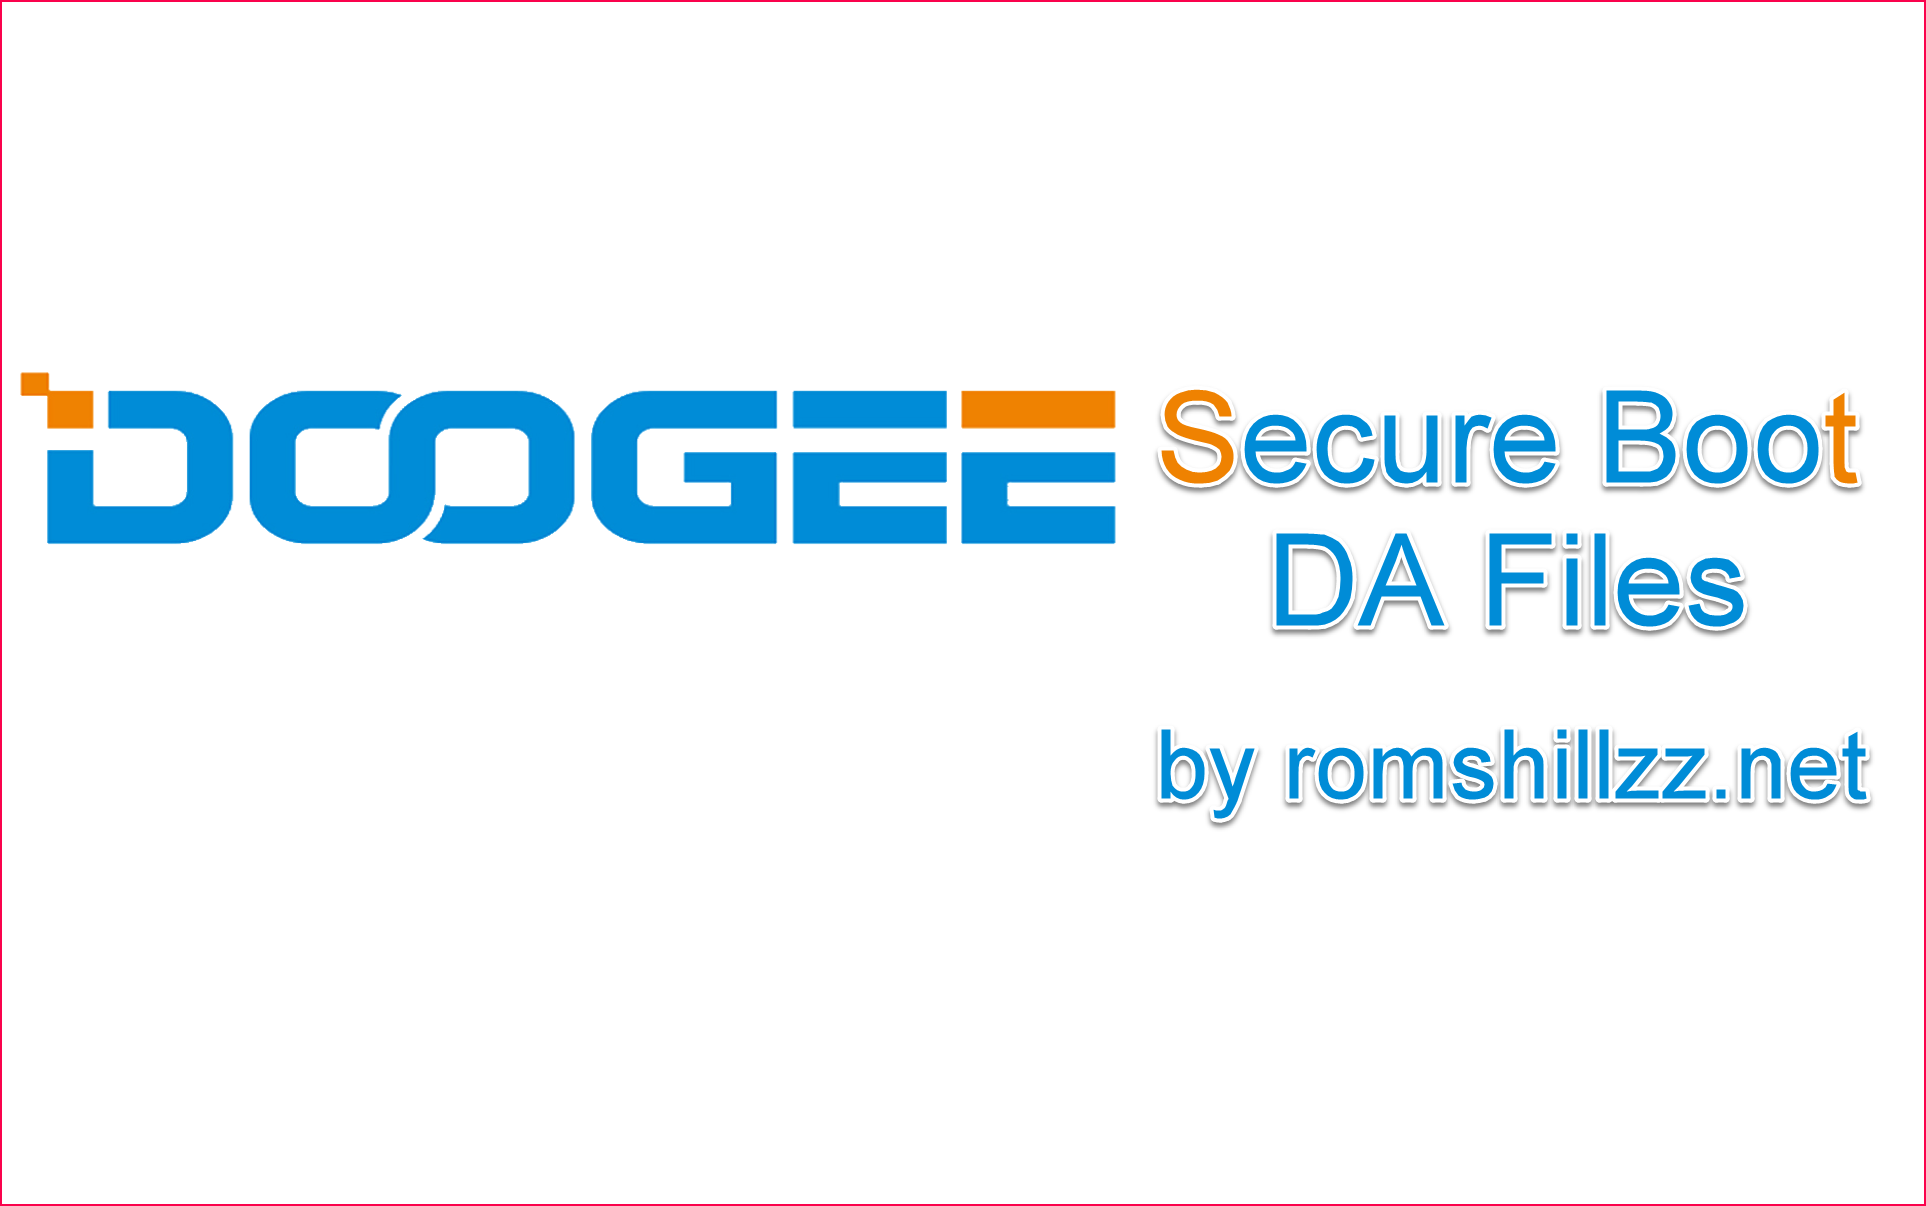 doogee-secure-boot.png